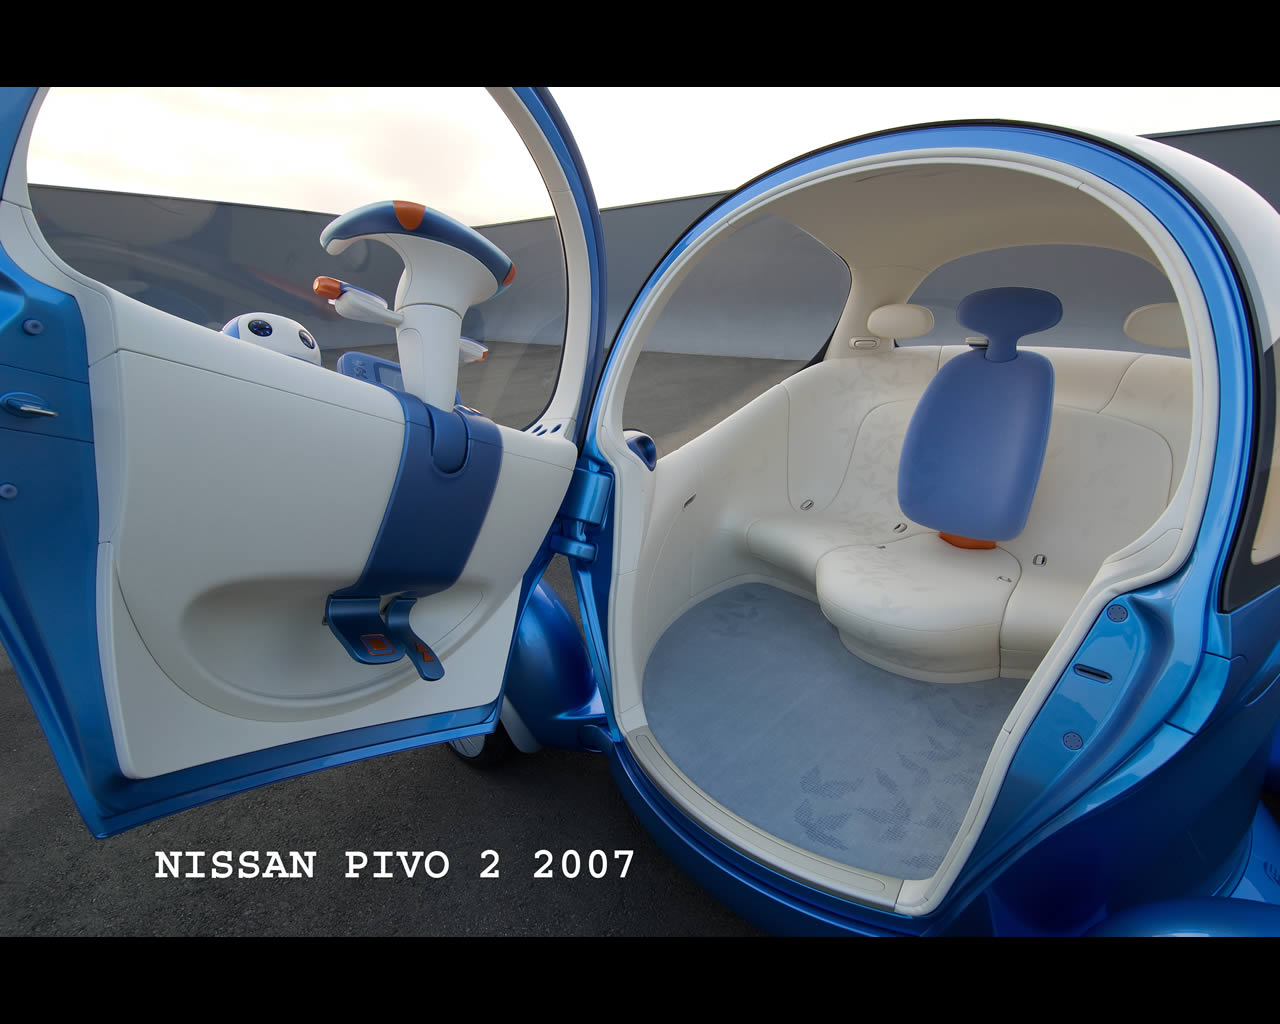 Nissan pivo 3 electric urban commuter concept 2011 nissan pivo 2 electric urban commuter concept vanachro Gallery